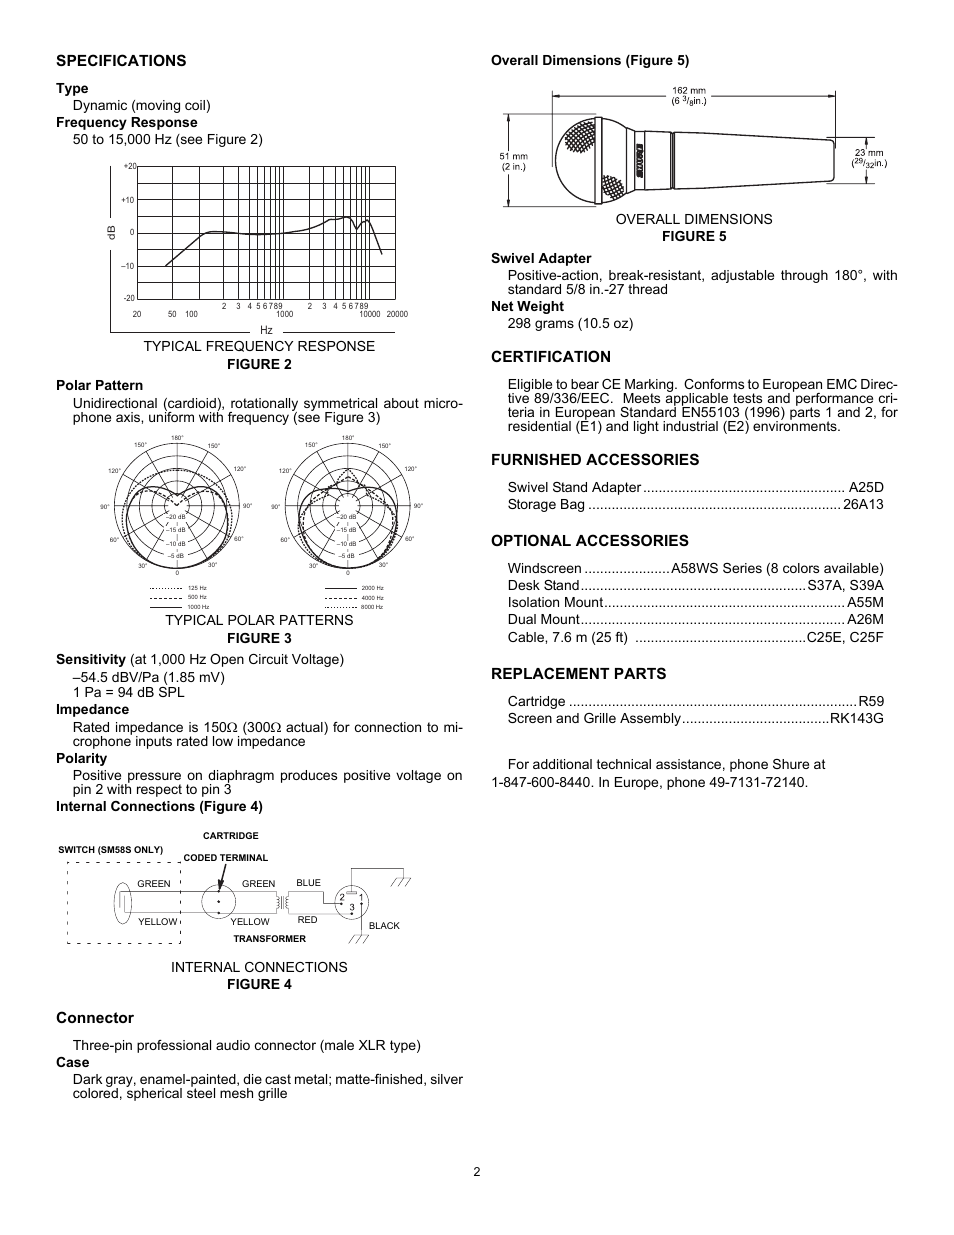 Specifications Type Frequency Response Shure Sm58 User Manual Circuit Polar Pattern Sensitivity At 1000 Hz Open